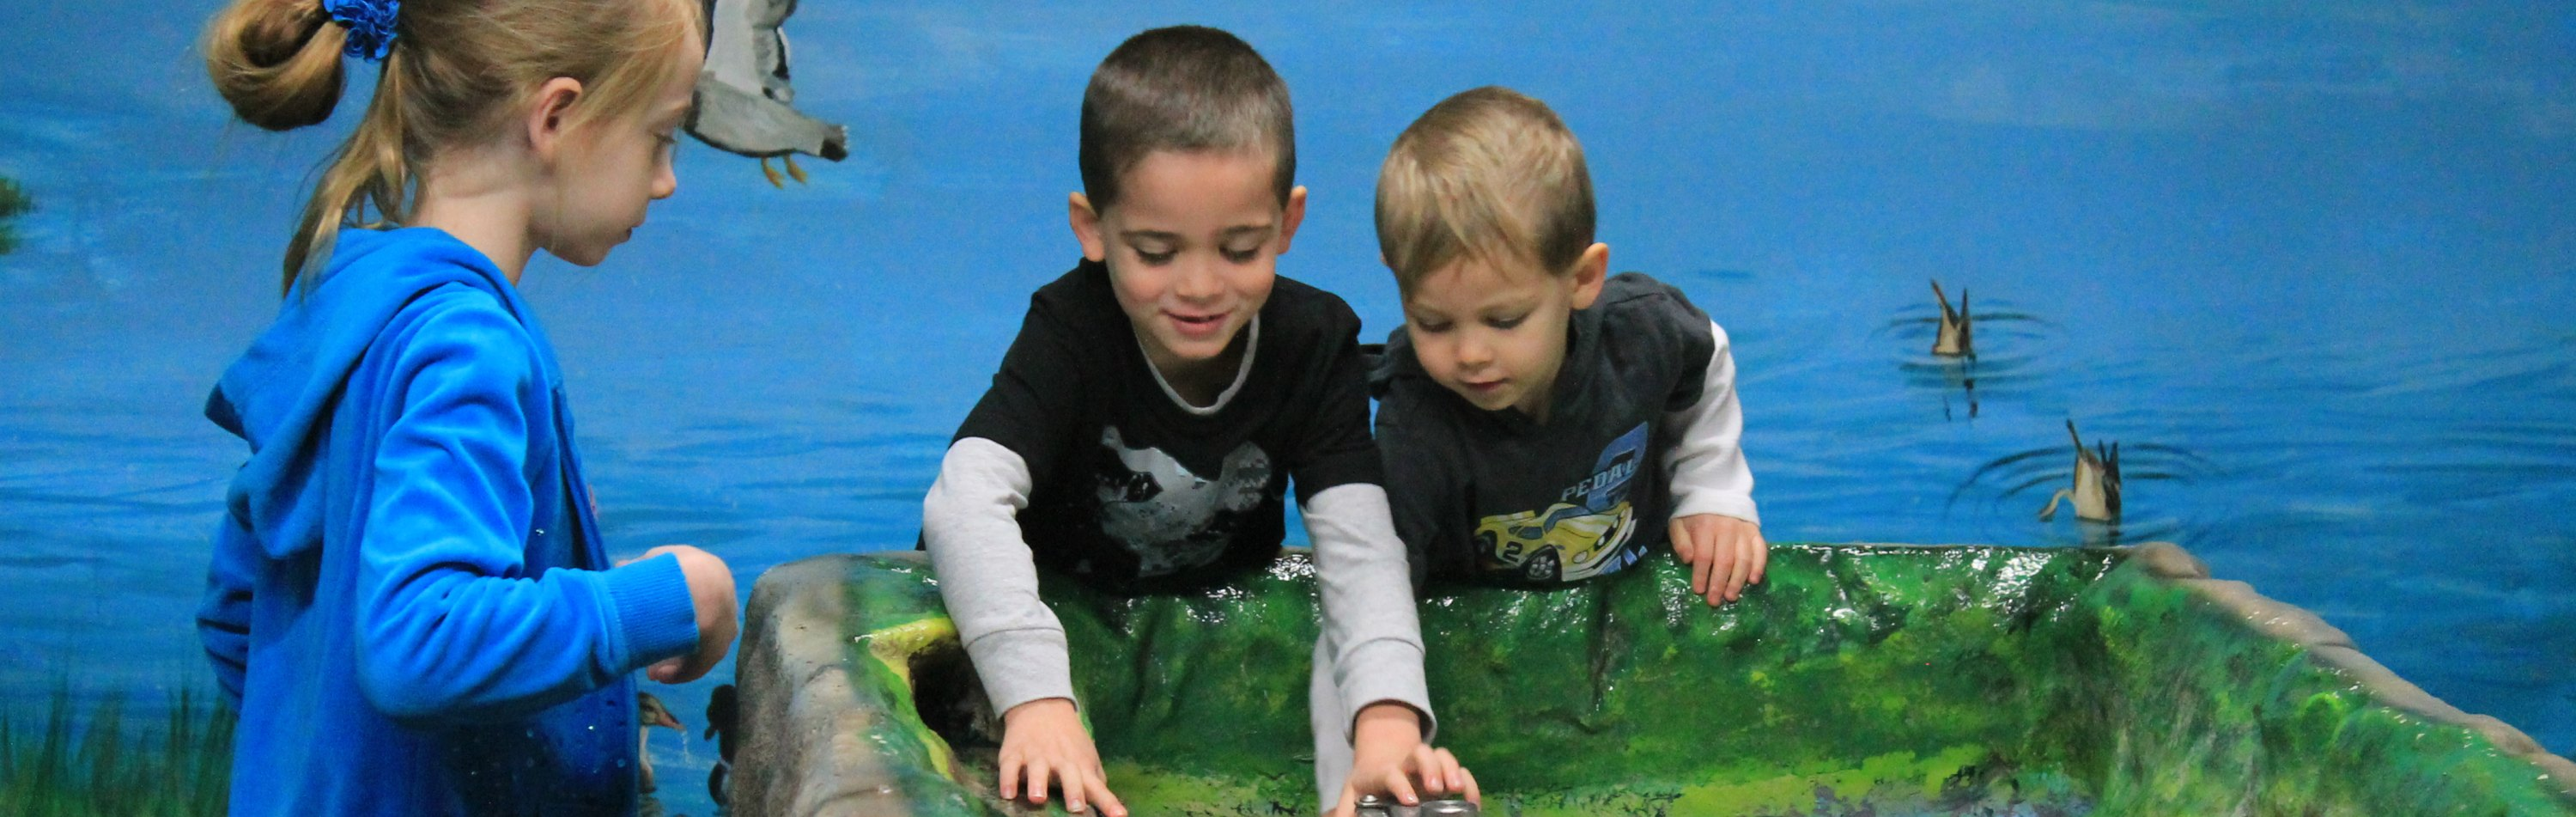 non-profit organizations & child care providers | groups | children's museum of la crosse | funmuseum.org